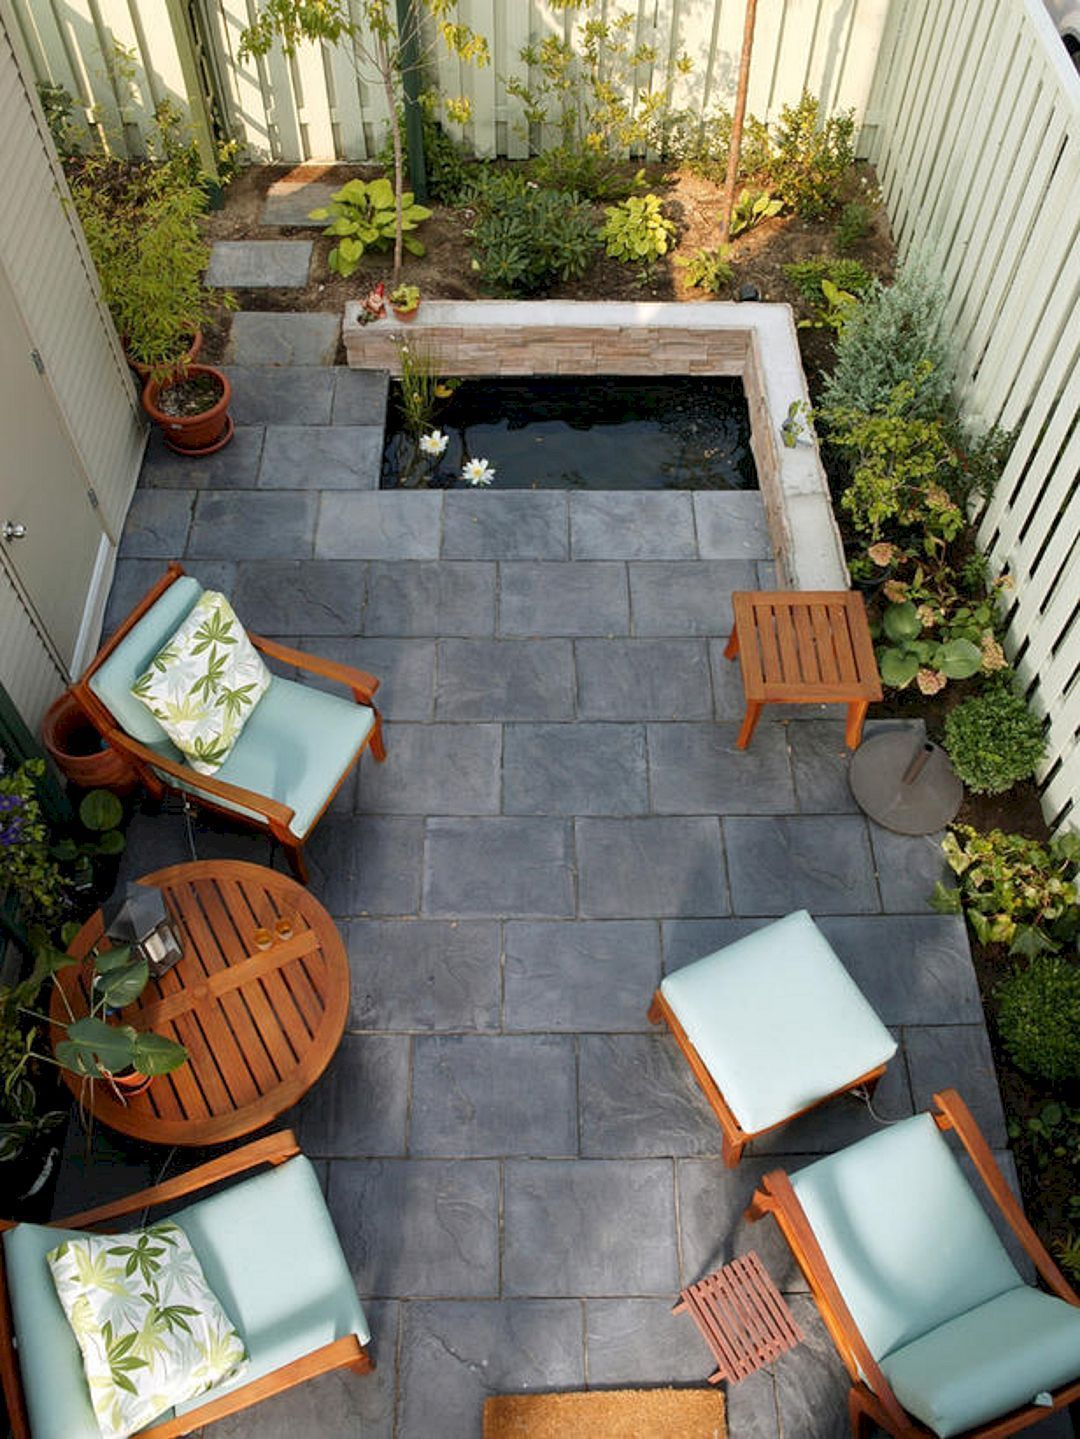 11 Best Diy Small Patio Ideas On A Budget Small Patio Design